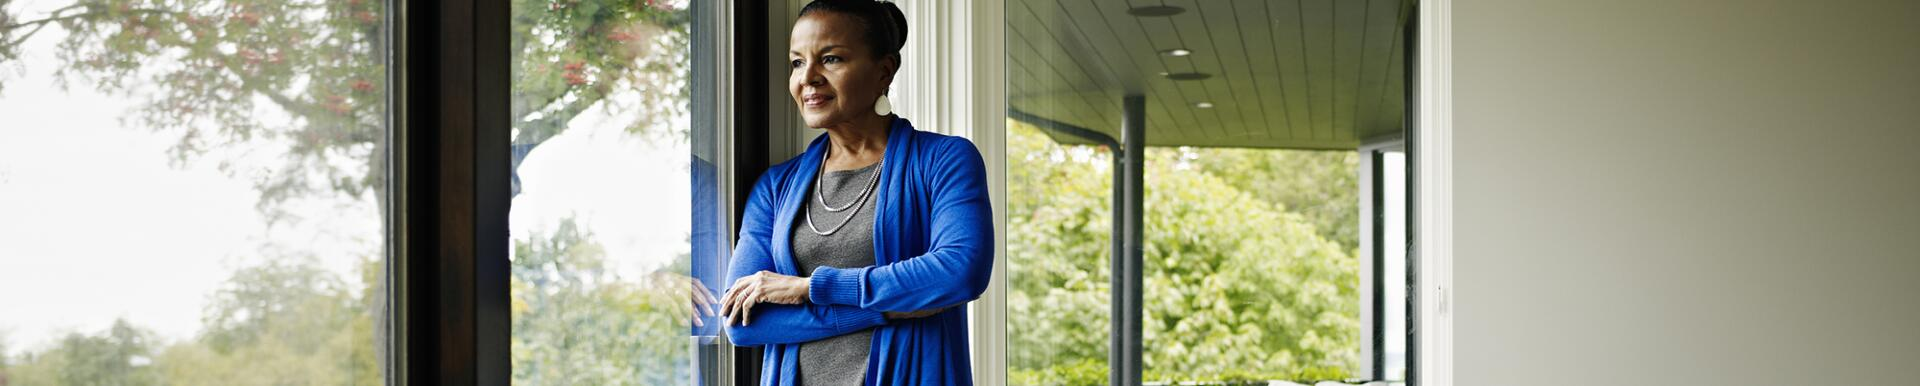 Woman standing arms crossed looking out window